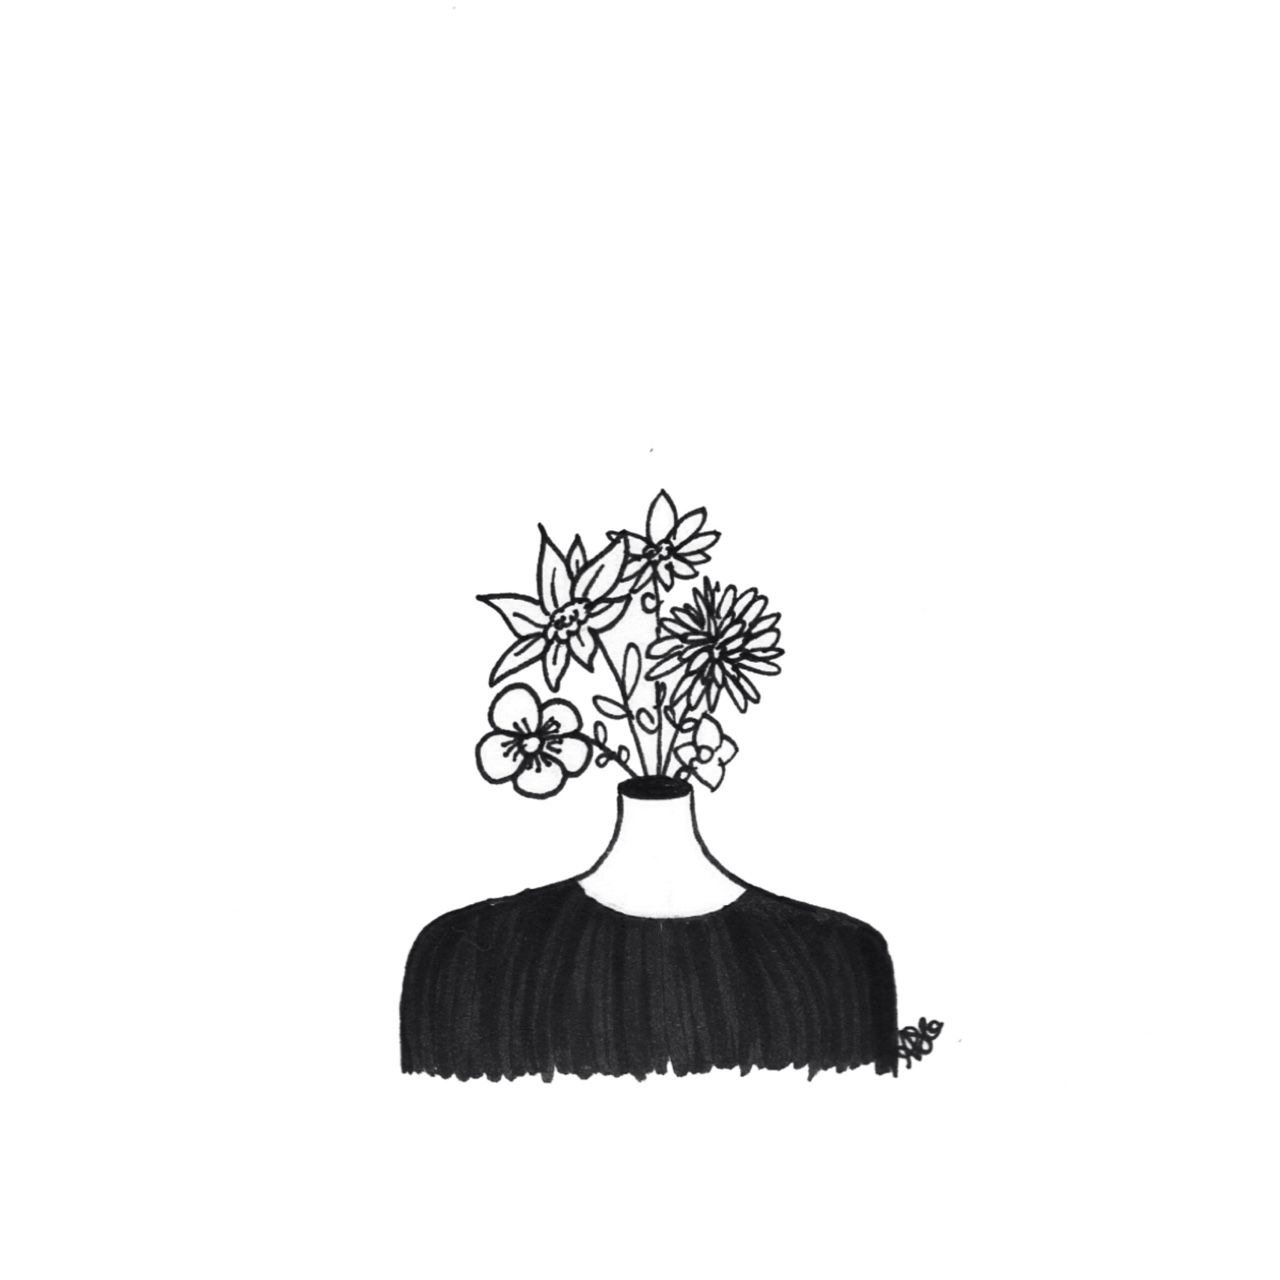 Flower Head Line Drawing : Voyager interesting pinterest desenhos nanquim